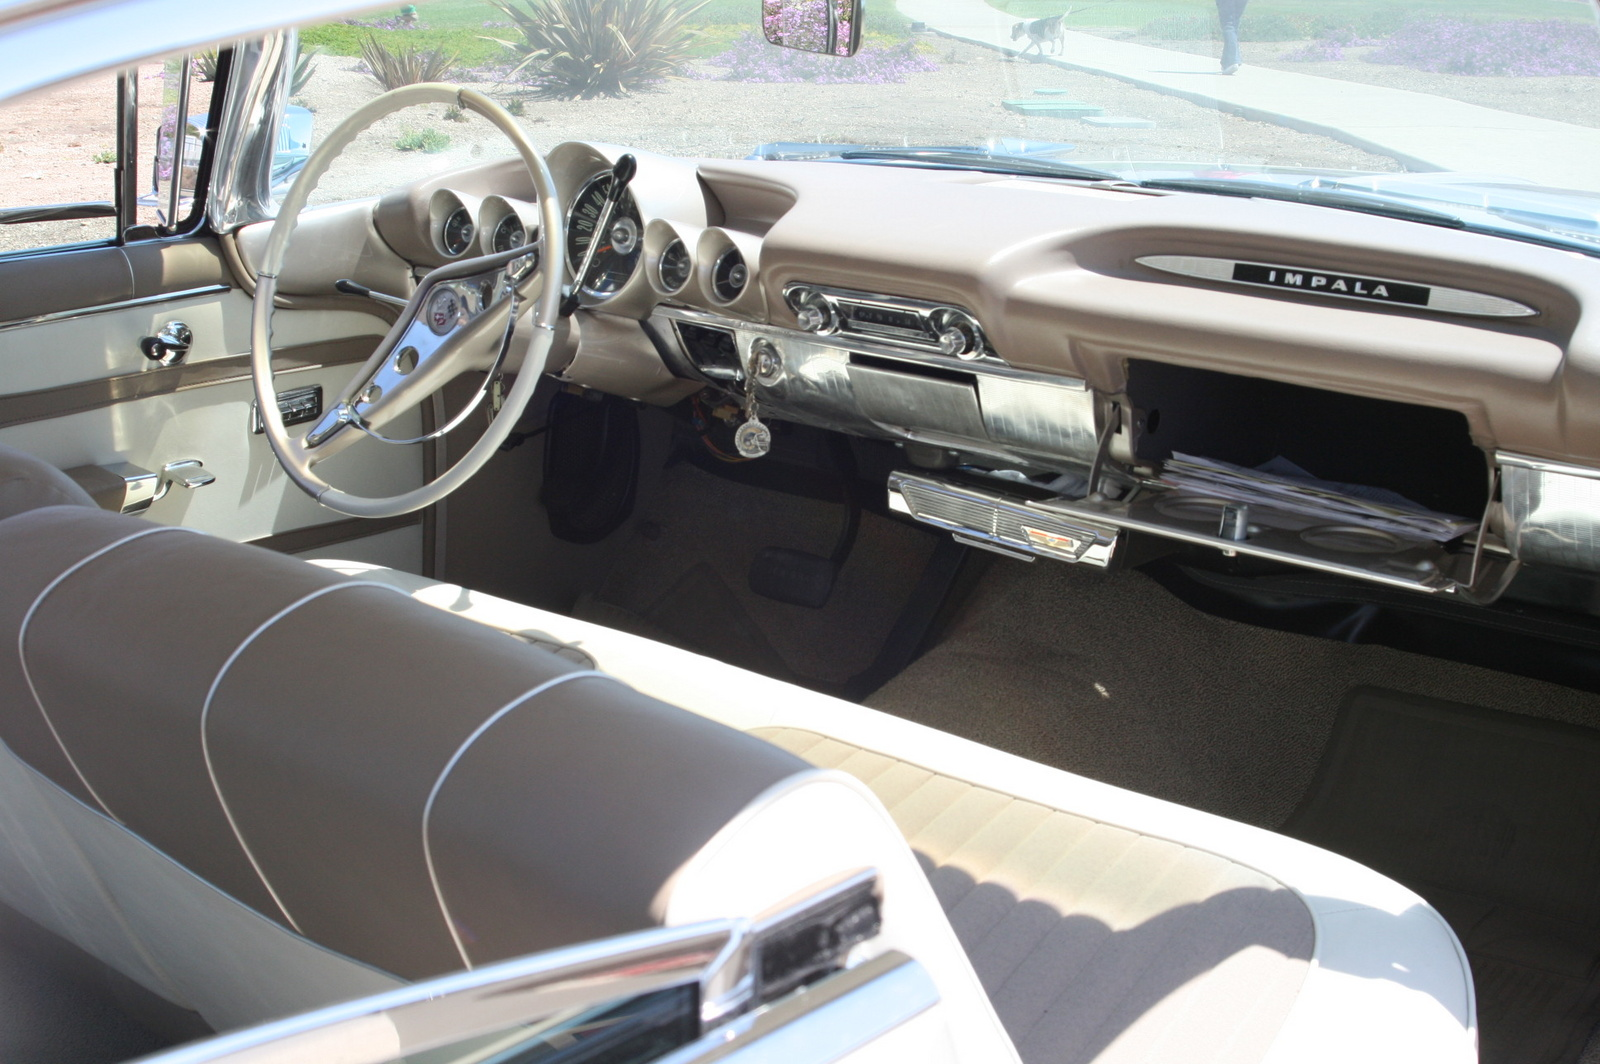 2008 Impala Ss For Sale >> 1959 Chevrolet Impala - Pictures - CarGurus